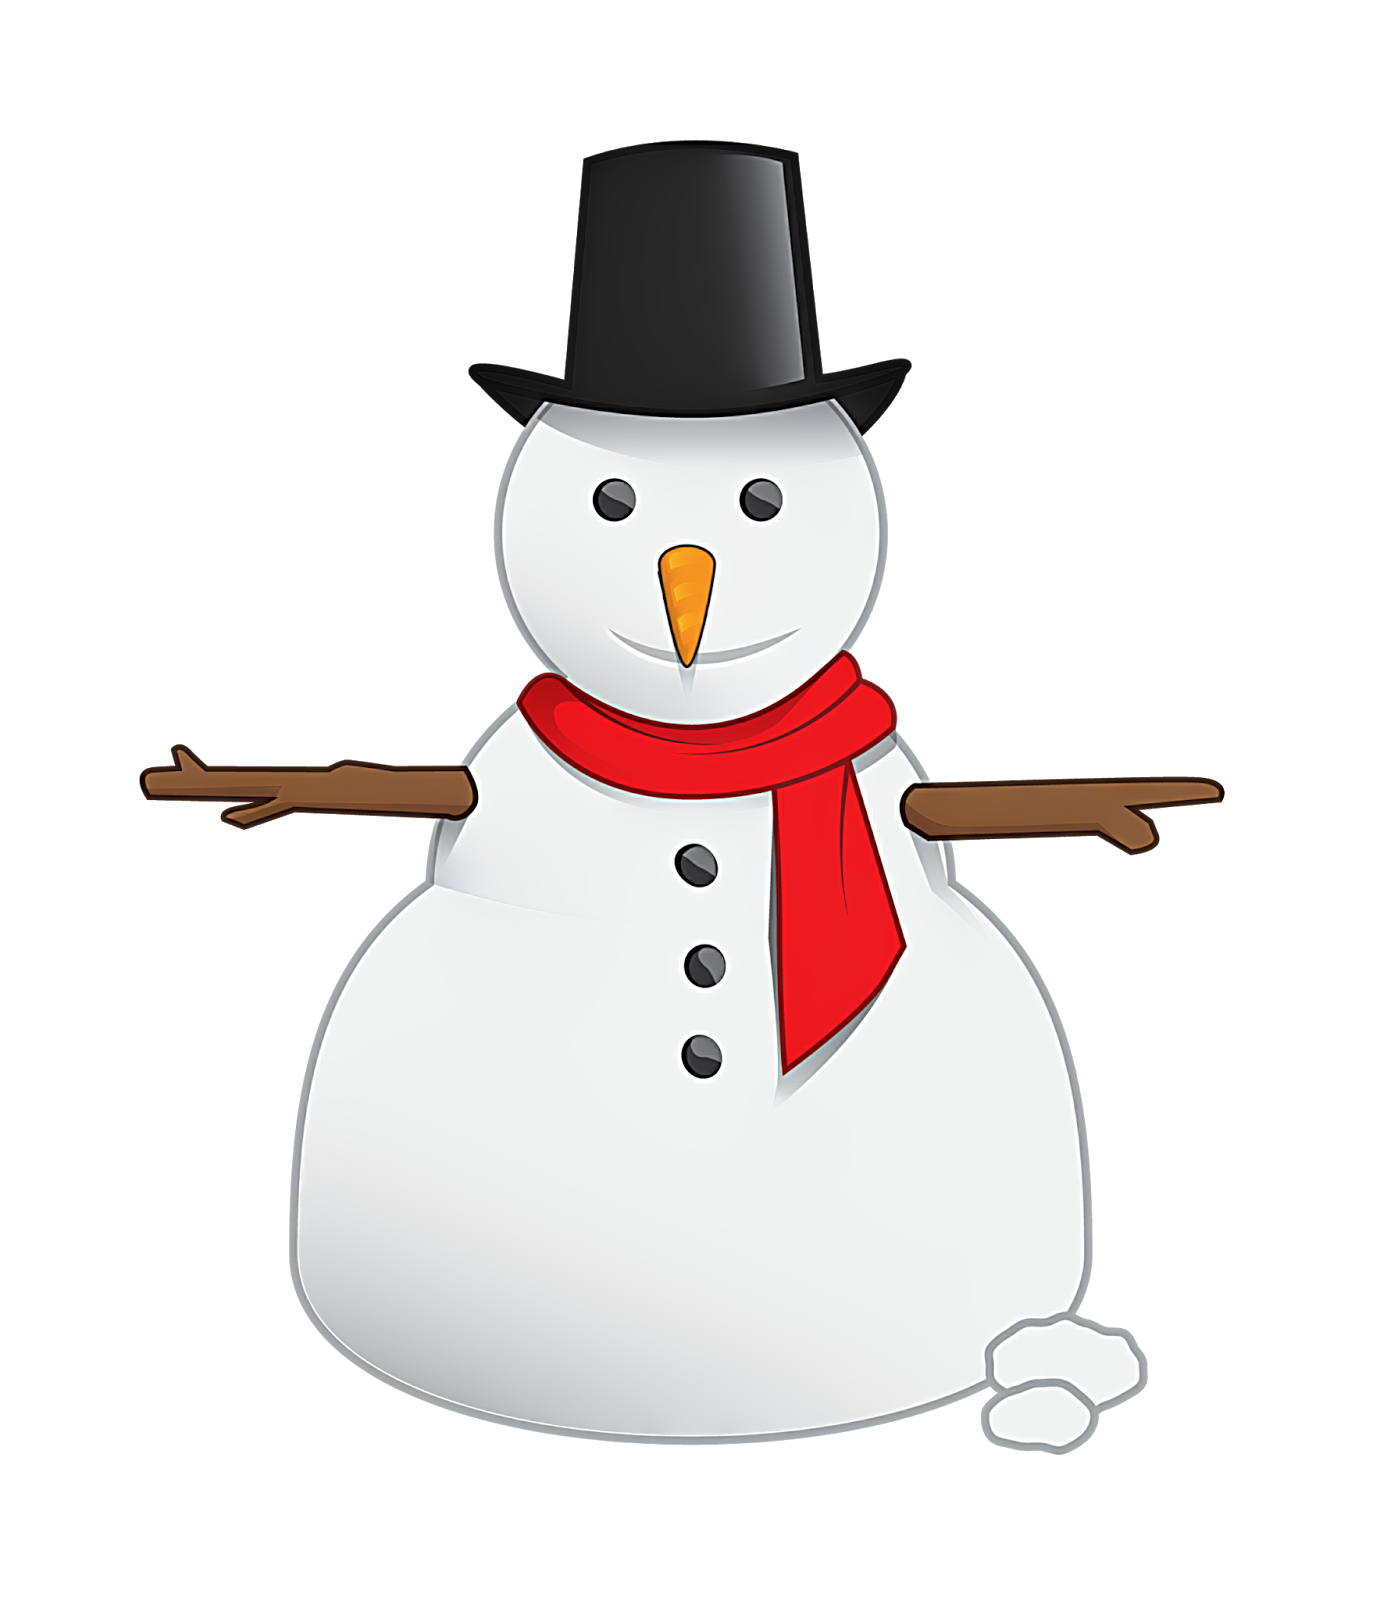 Snowman clipart with crown graphic library download Snowman Png Vector #30780 - Free Icons and PNG Backgrounds graphic library download